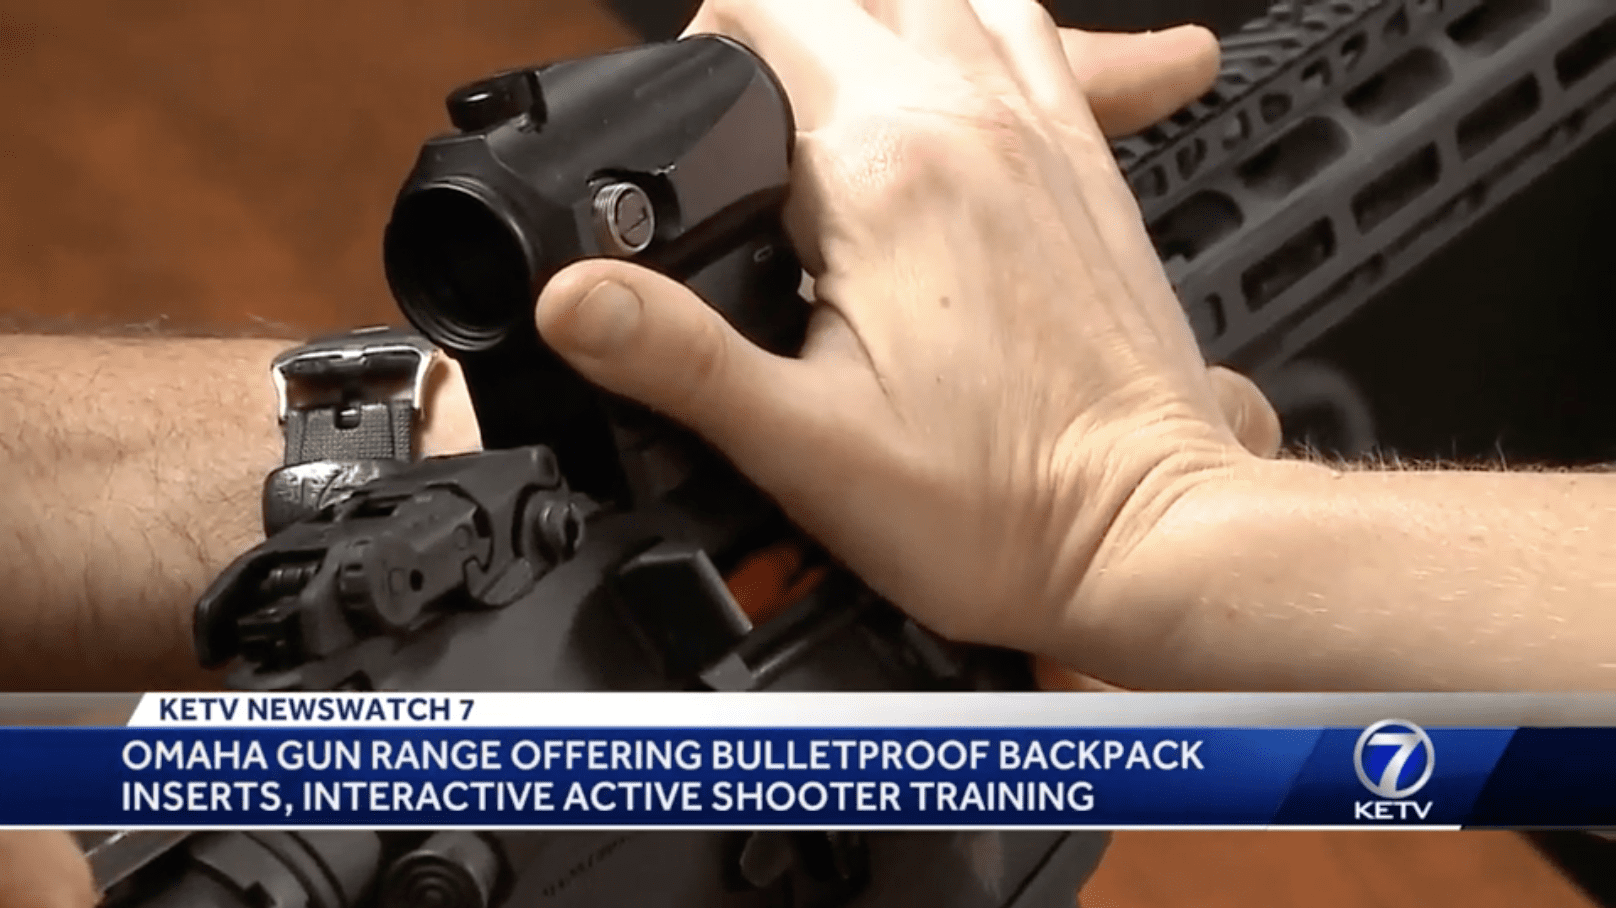 Gun range Offers Bulletproof Backpack Inserts | 88 Tactical | Omaha